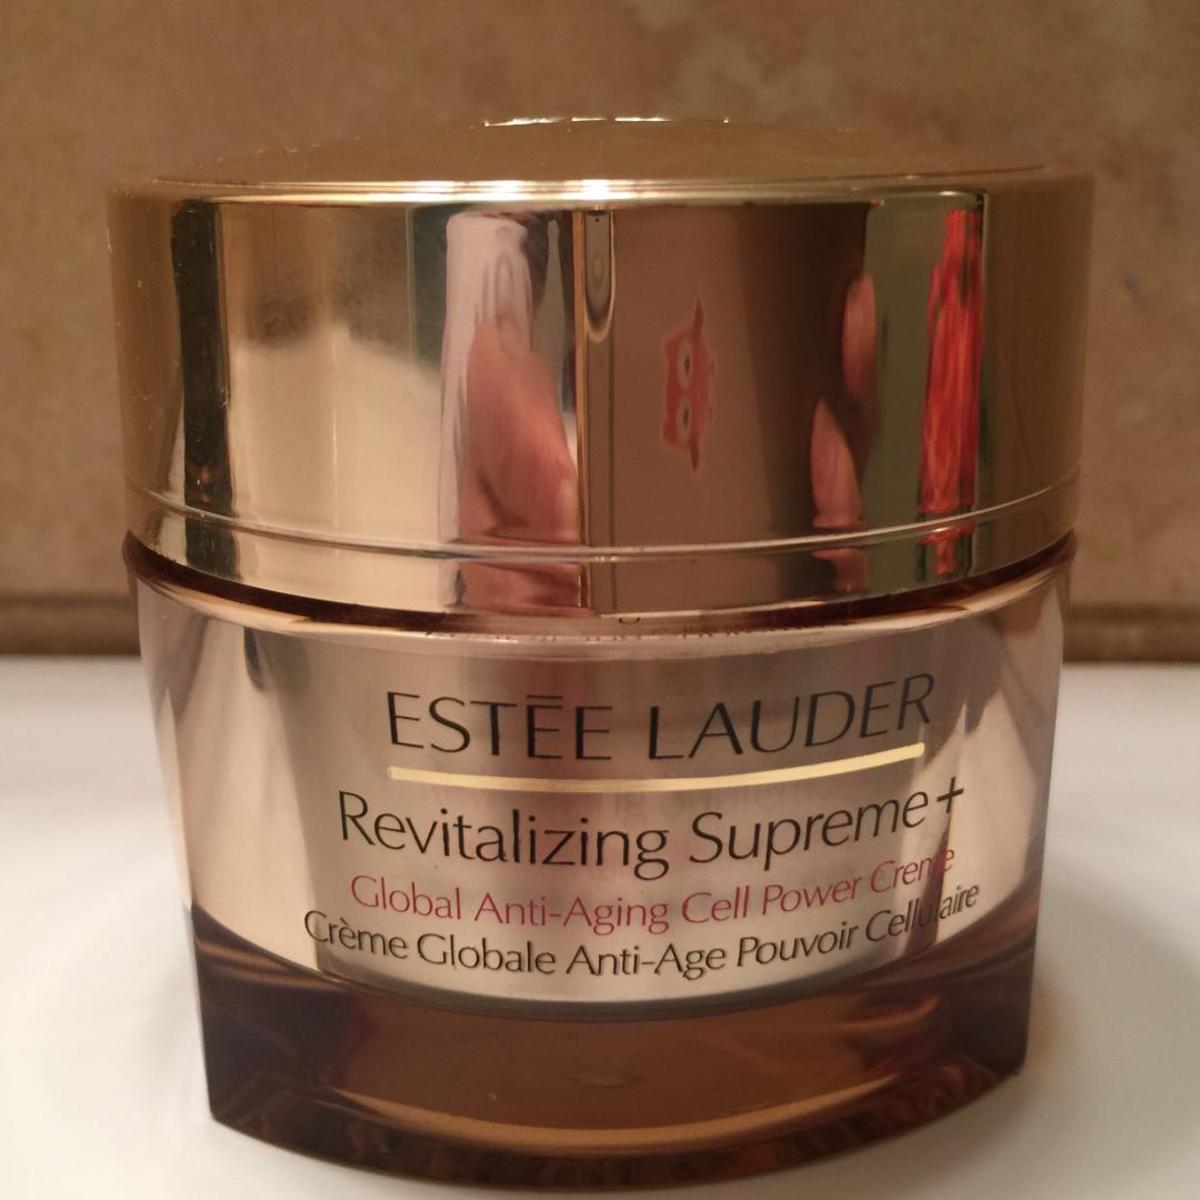 Estee Lauder Revitalizing Supreme Global Anti-Aging Cell Power Creme Review